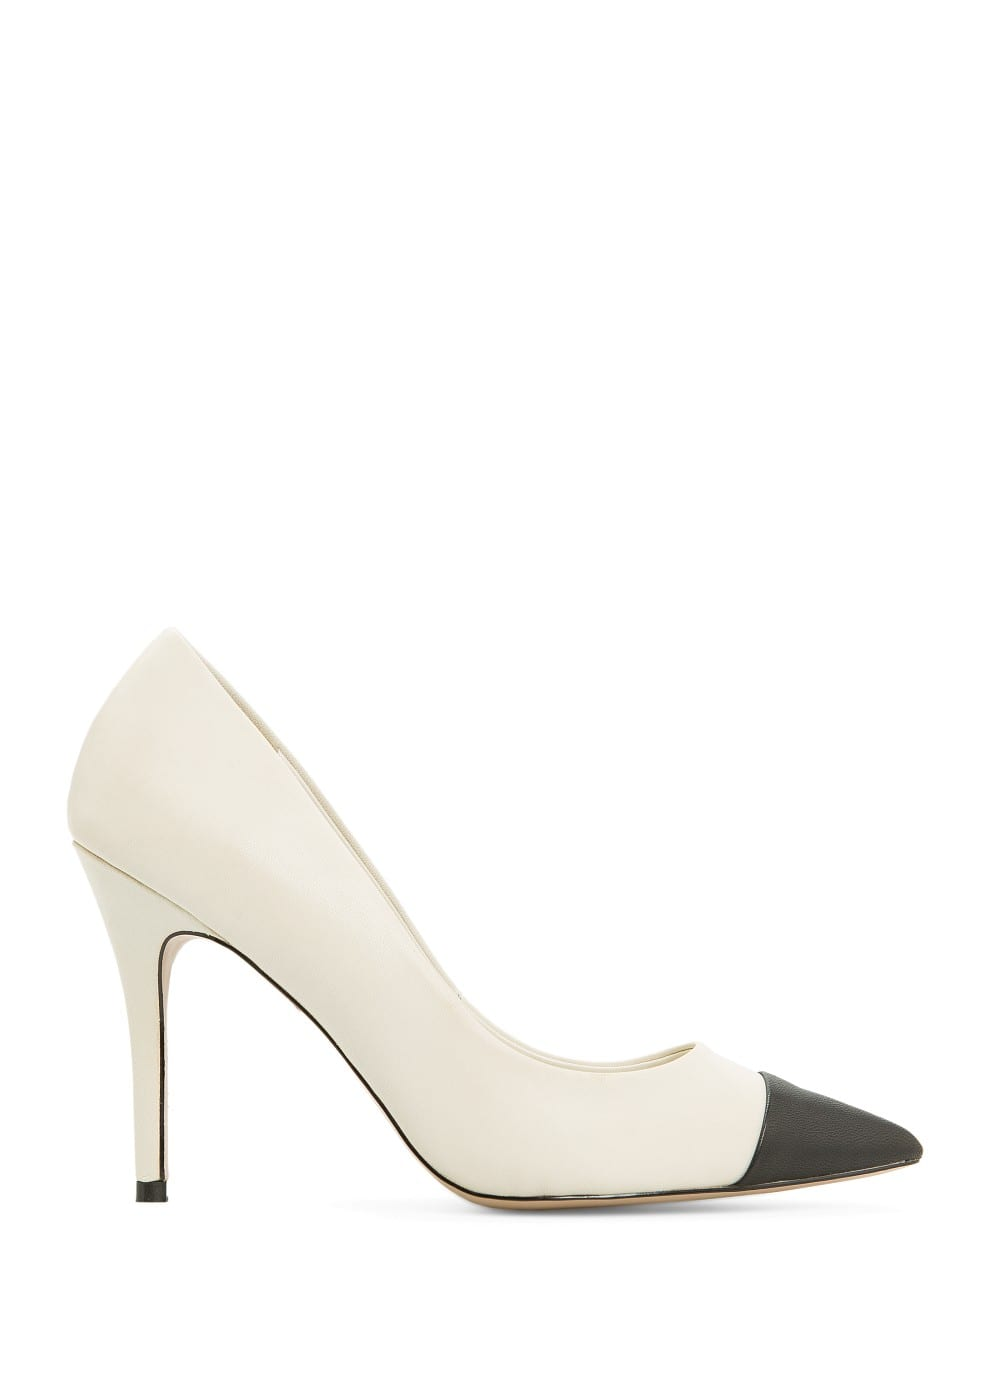 Contrast cap toe leather stilettos